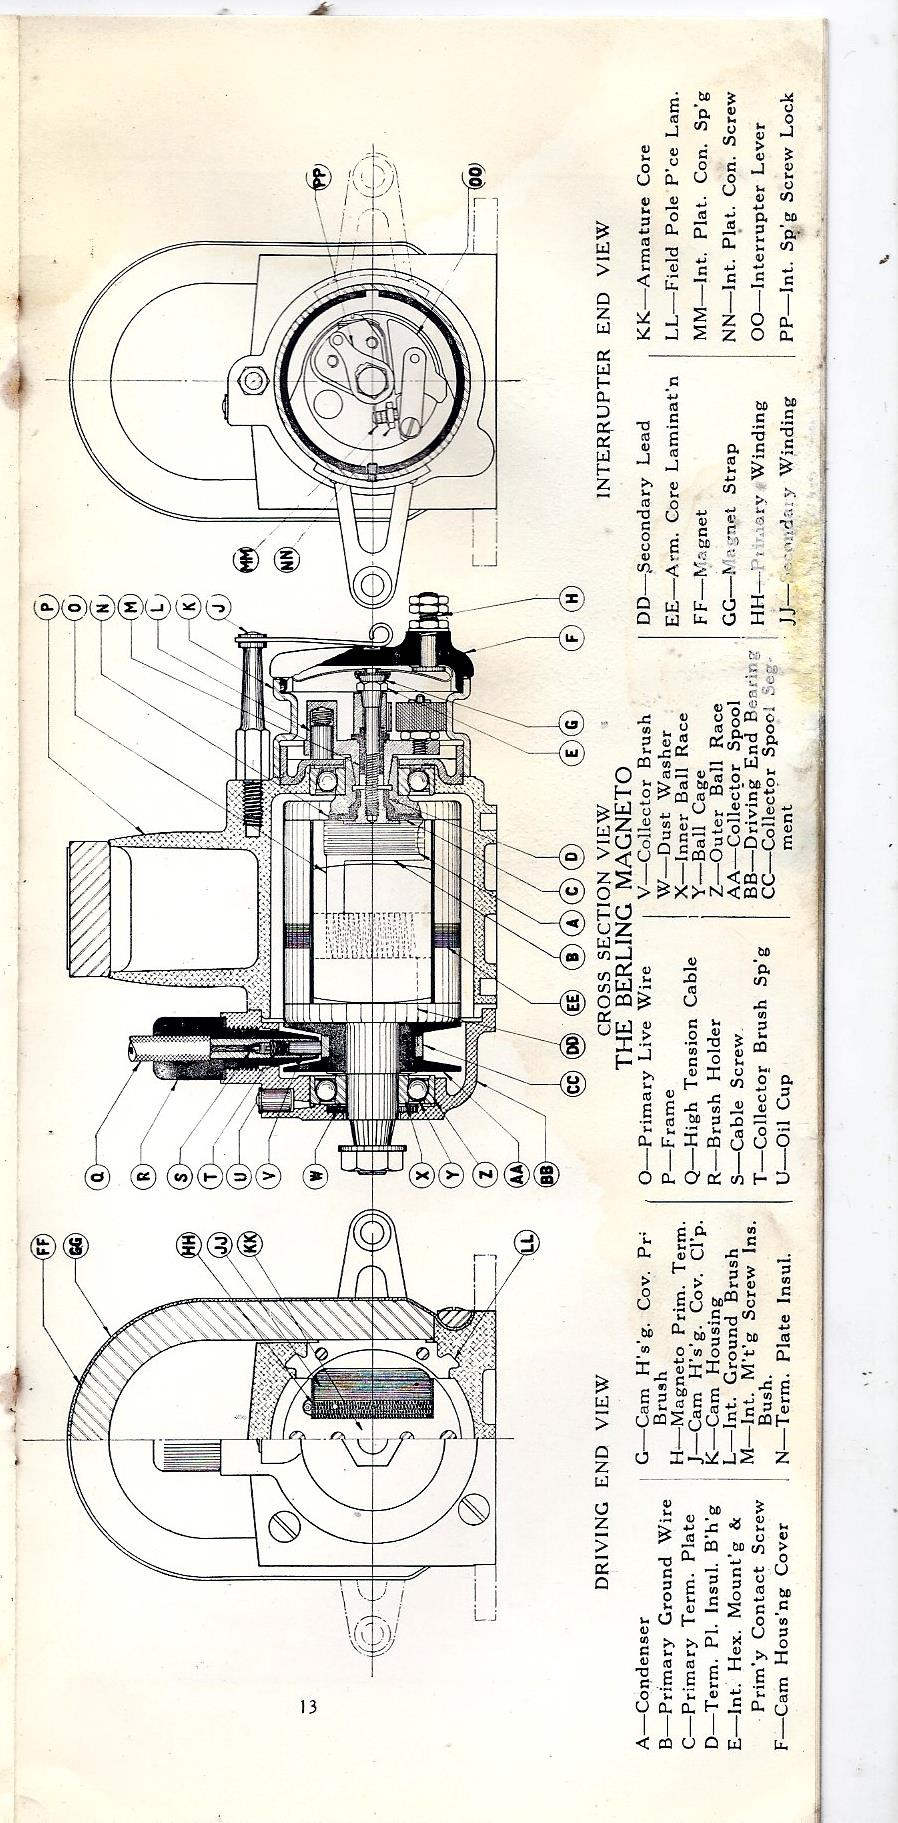 steiner mower wiring diagram